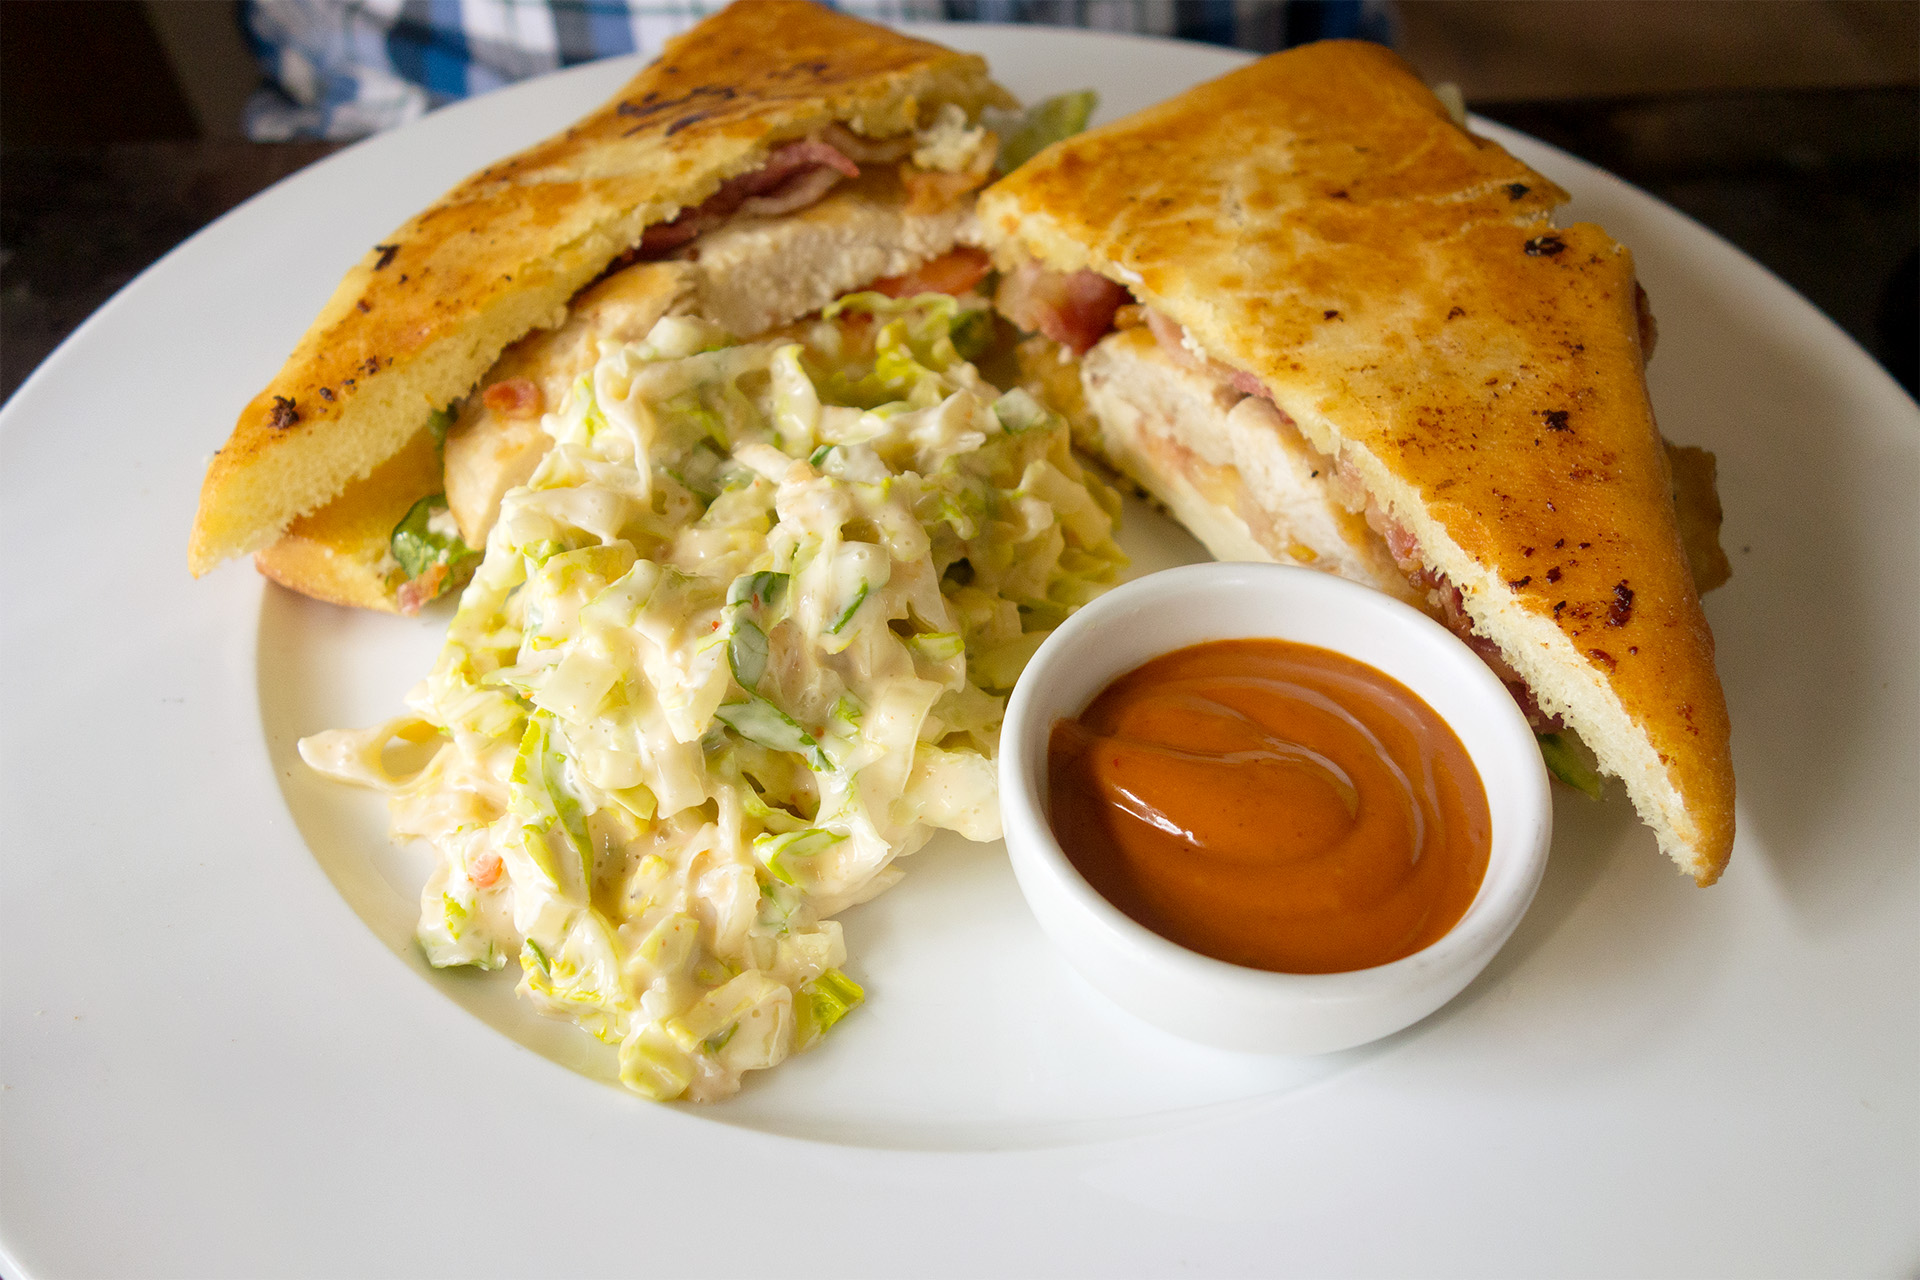 Chicken sandwich and the famous coleslaw.